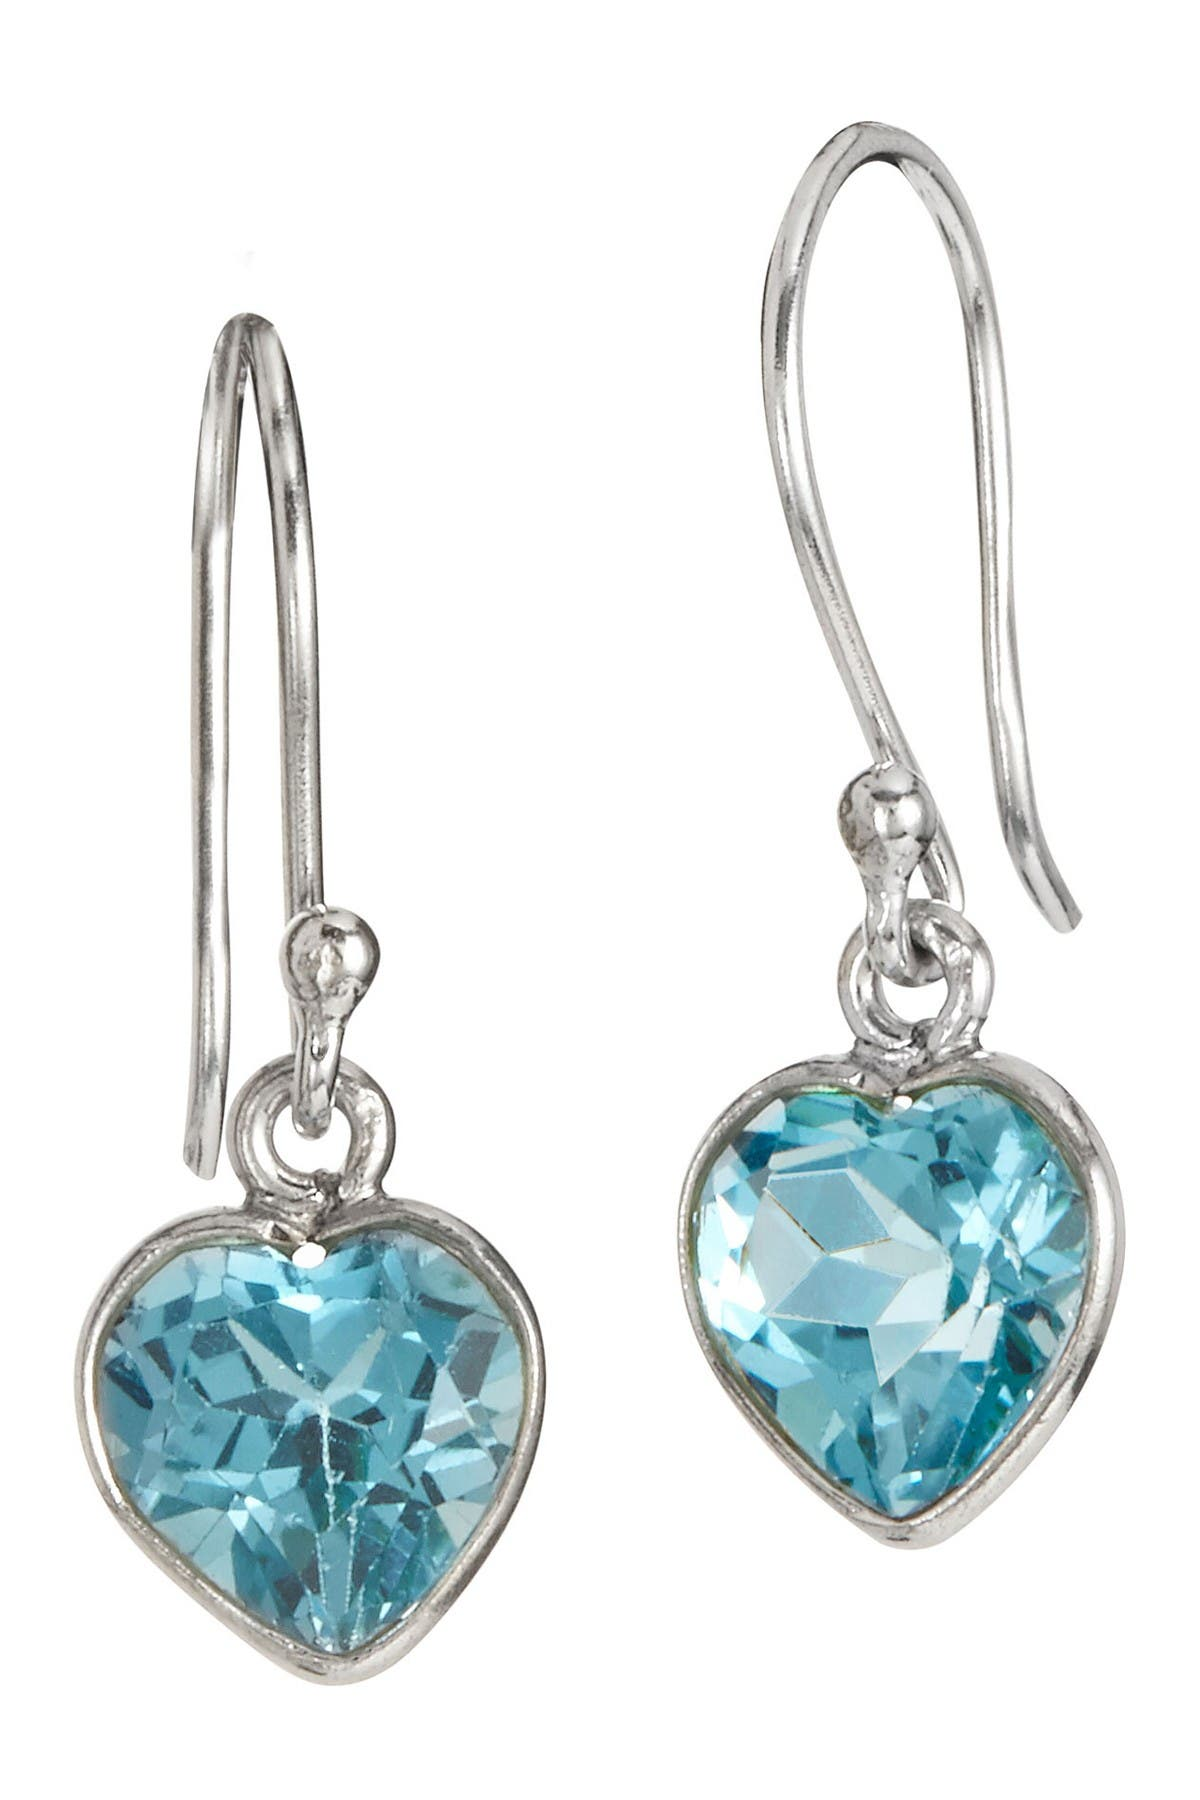 Image of Savvy Cie Sterling Silver Bezel Set Blue Topaz Heart Drop Earrings